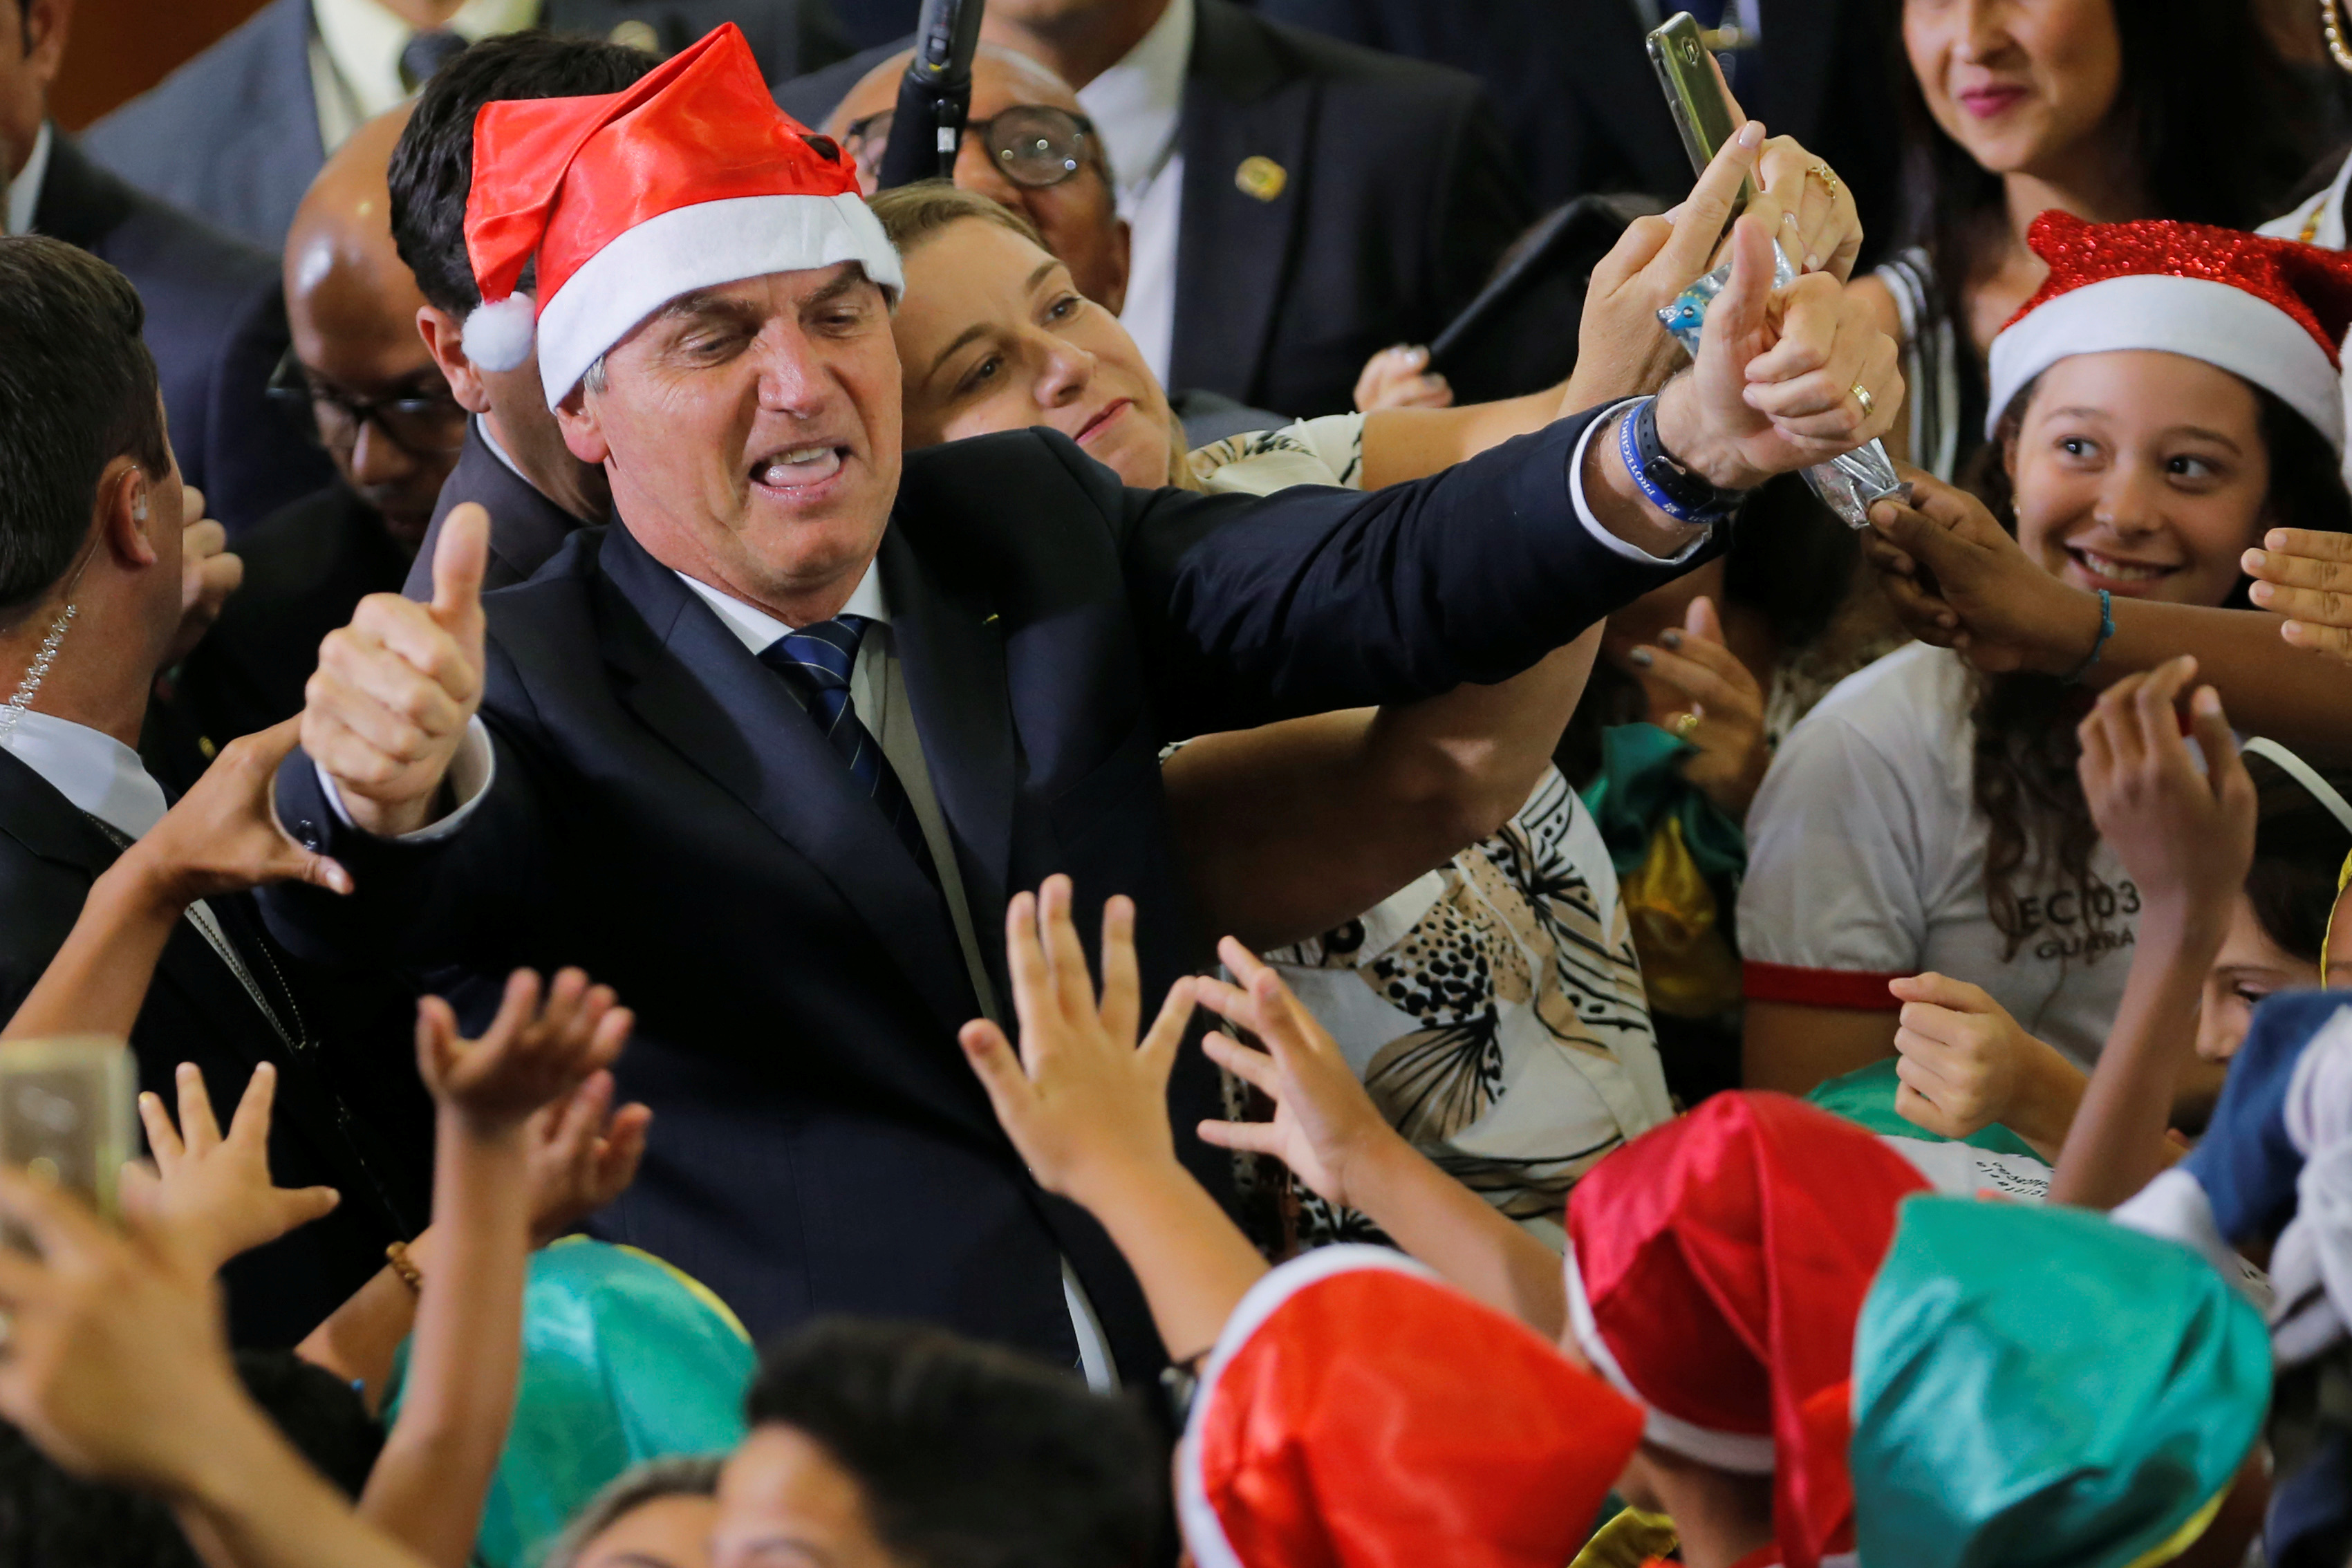 Brazil's President Jair Bolsonaro poses for a  picture wearing a Santa Claus hat during  a Christmas ceremony at Planalto Palace in Brasilia, Brazil December 19, 2019. REUTERS/Adriano Machado